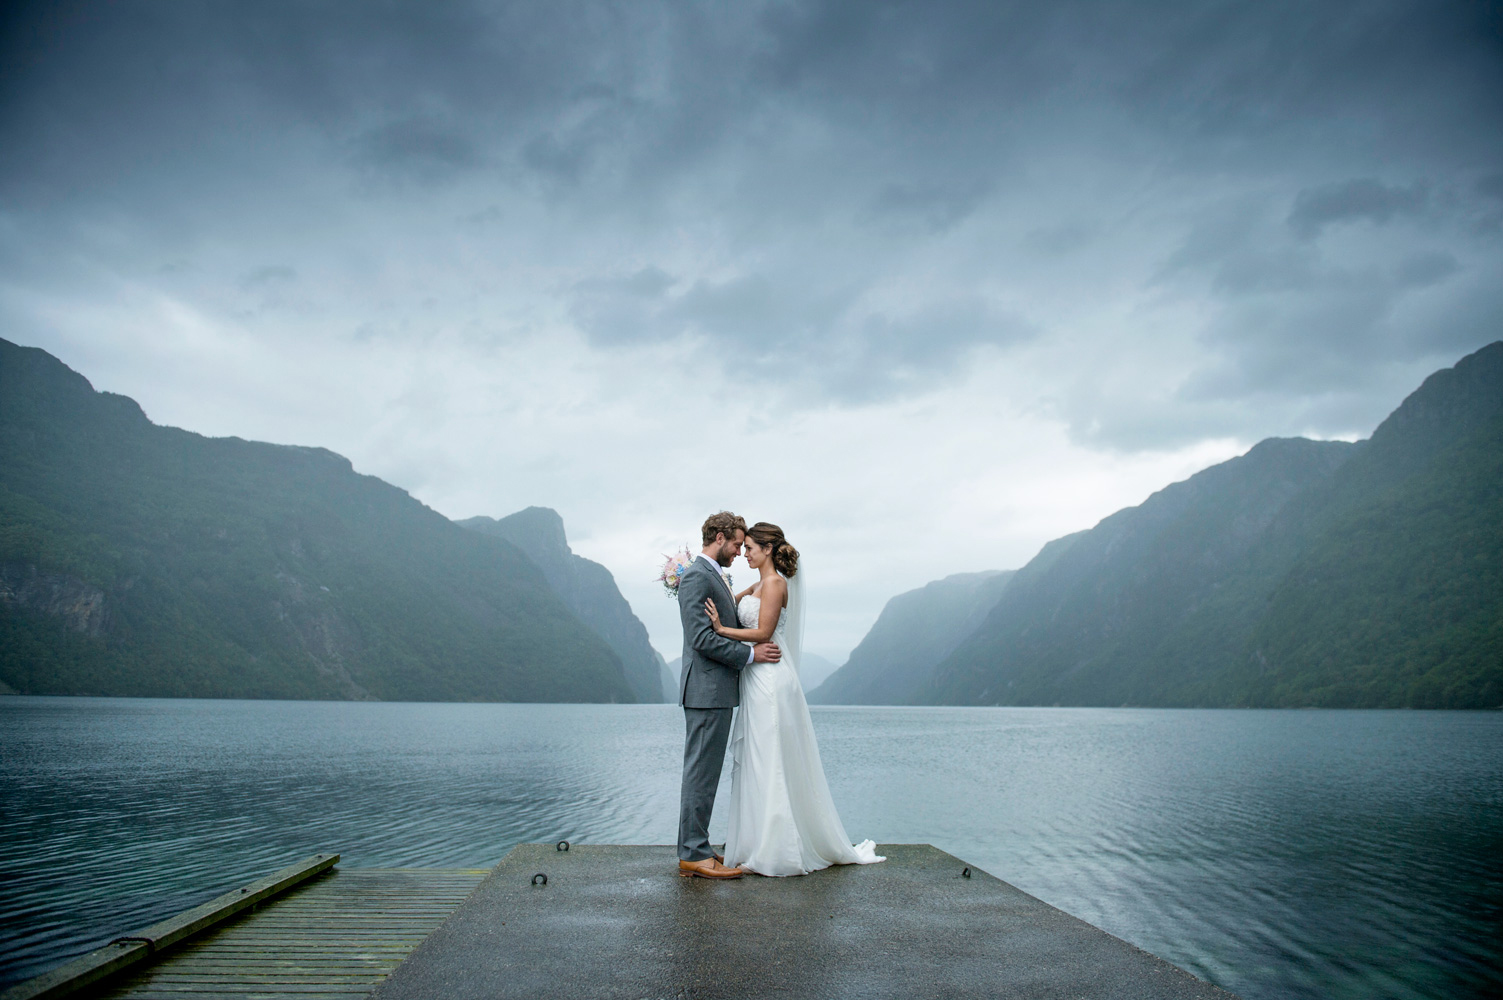 The Fjord - Norway | SimonBuck Photography | WedElf